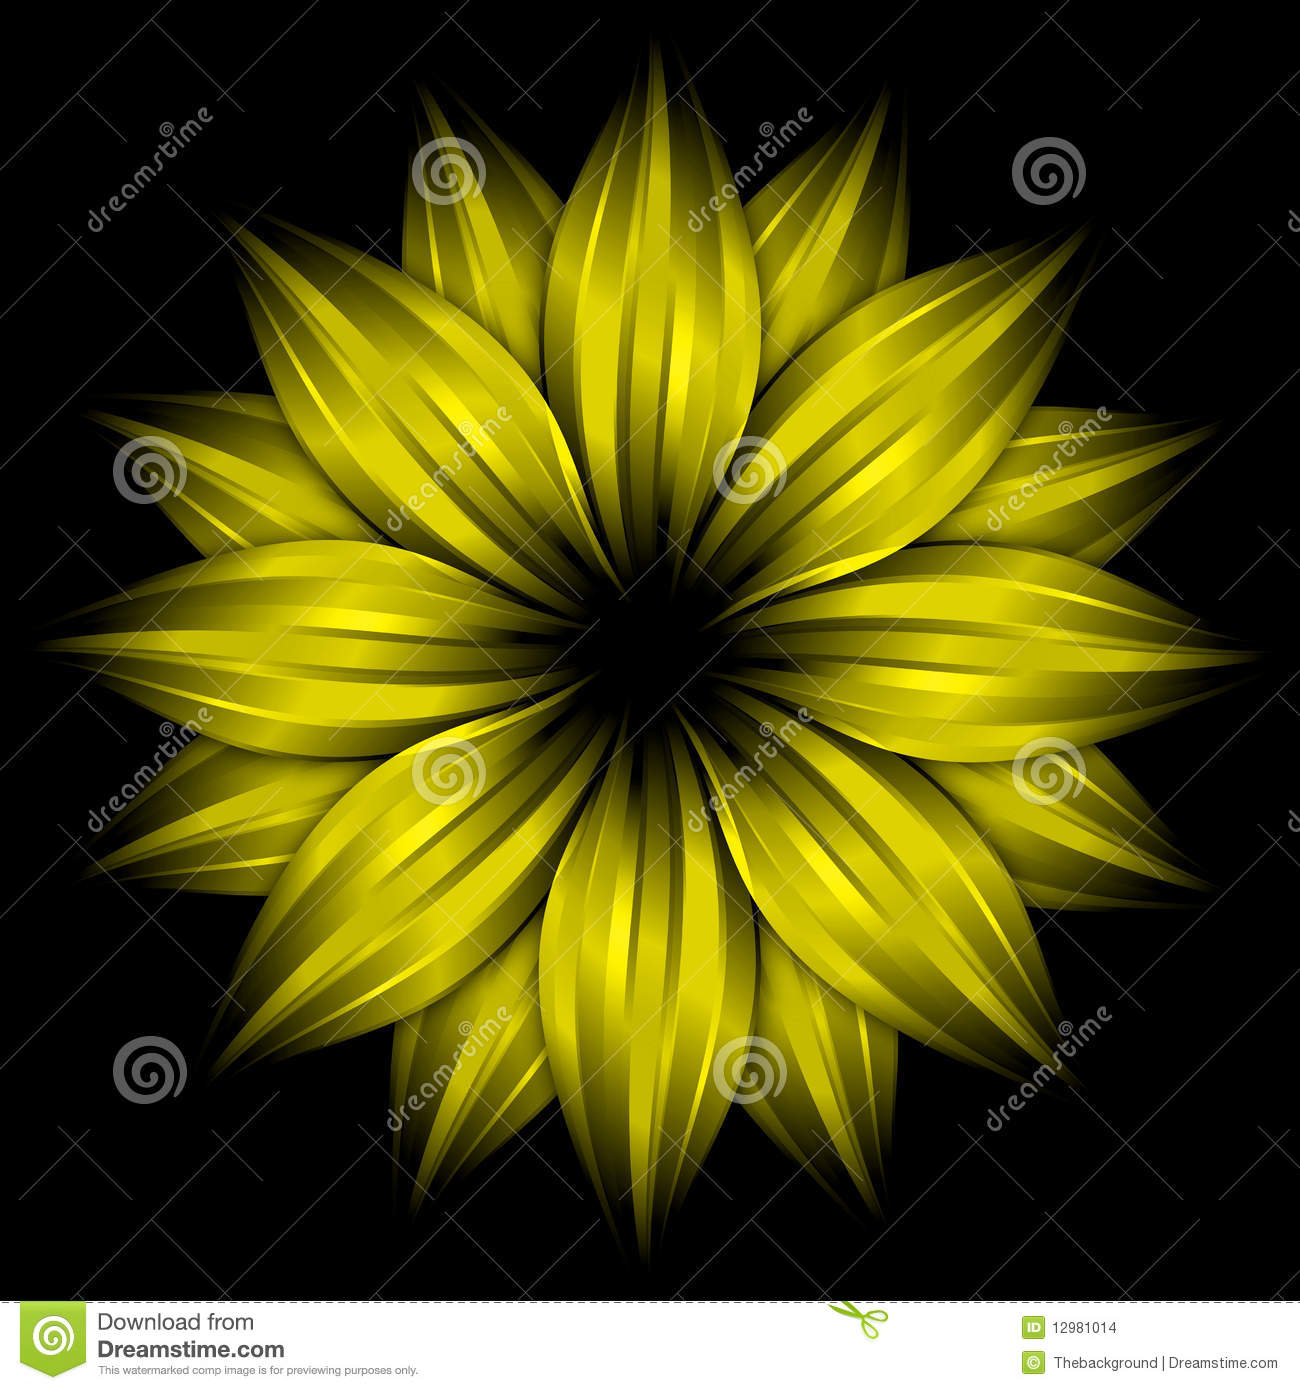 Sunflower Iphone Wallpaper Abstract Yellow Flower On Black Background Stock Images